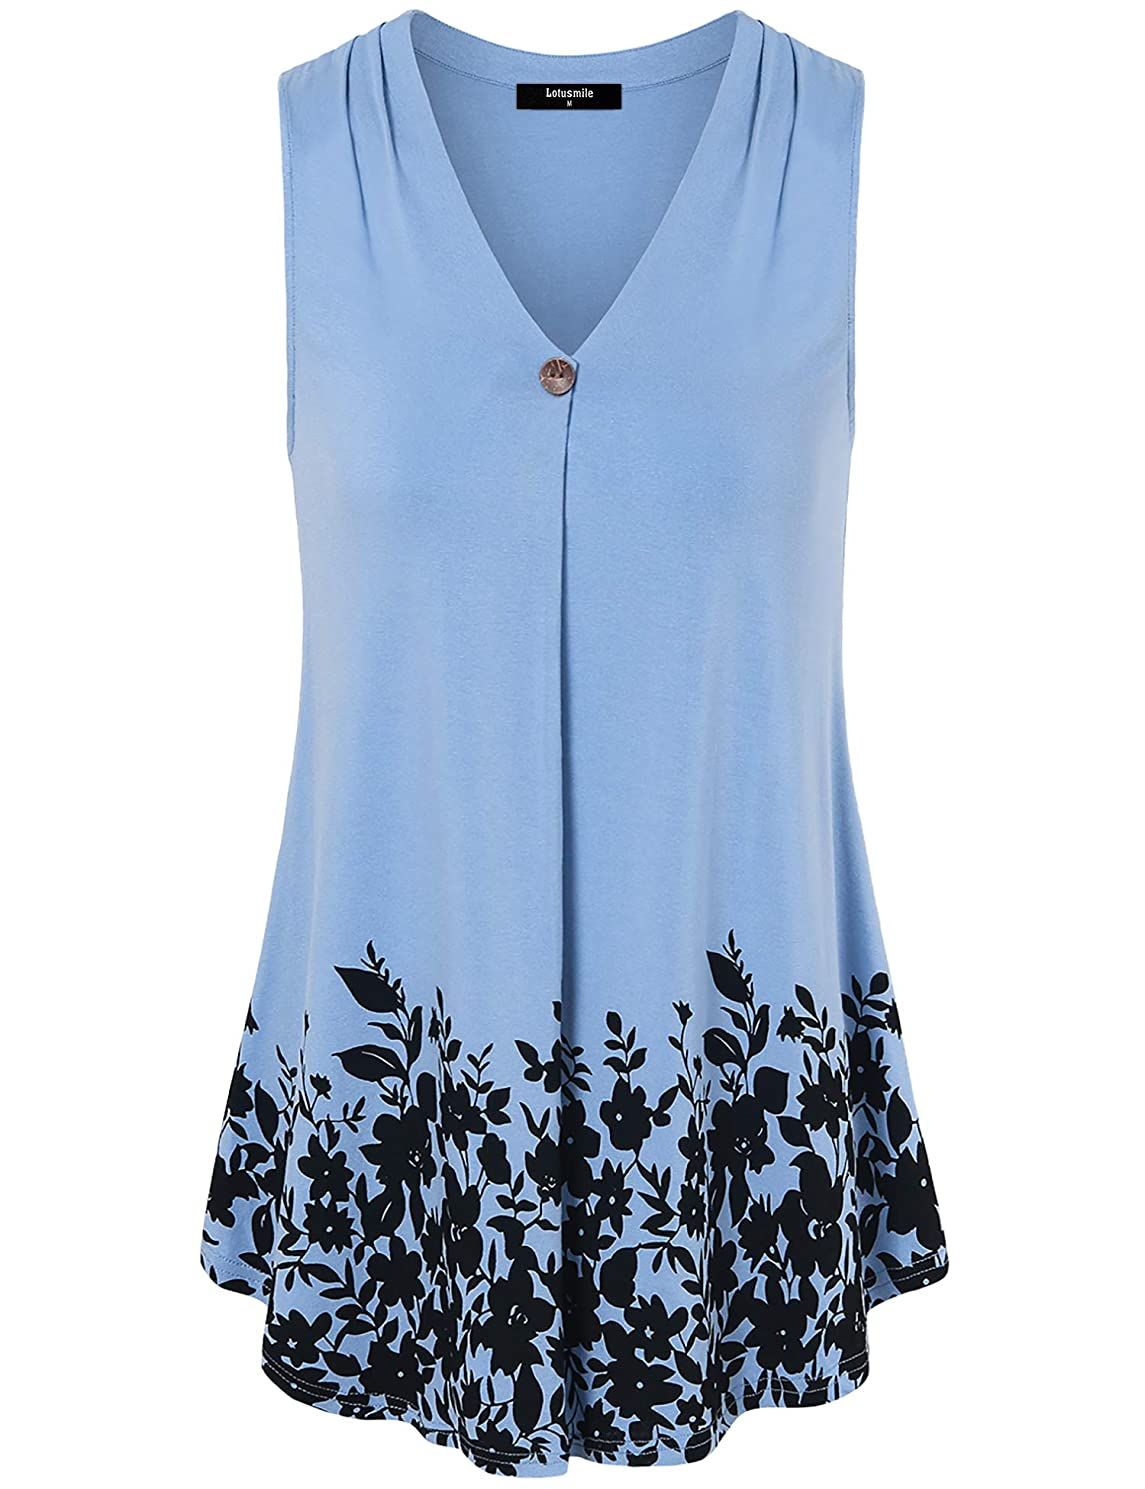 Lotusmile Women Sleeveless Floral Print Tops Casual V Neck A Line Pleated Tunic Shirts